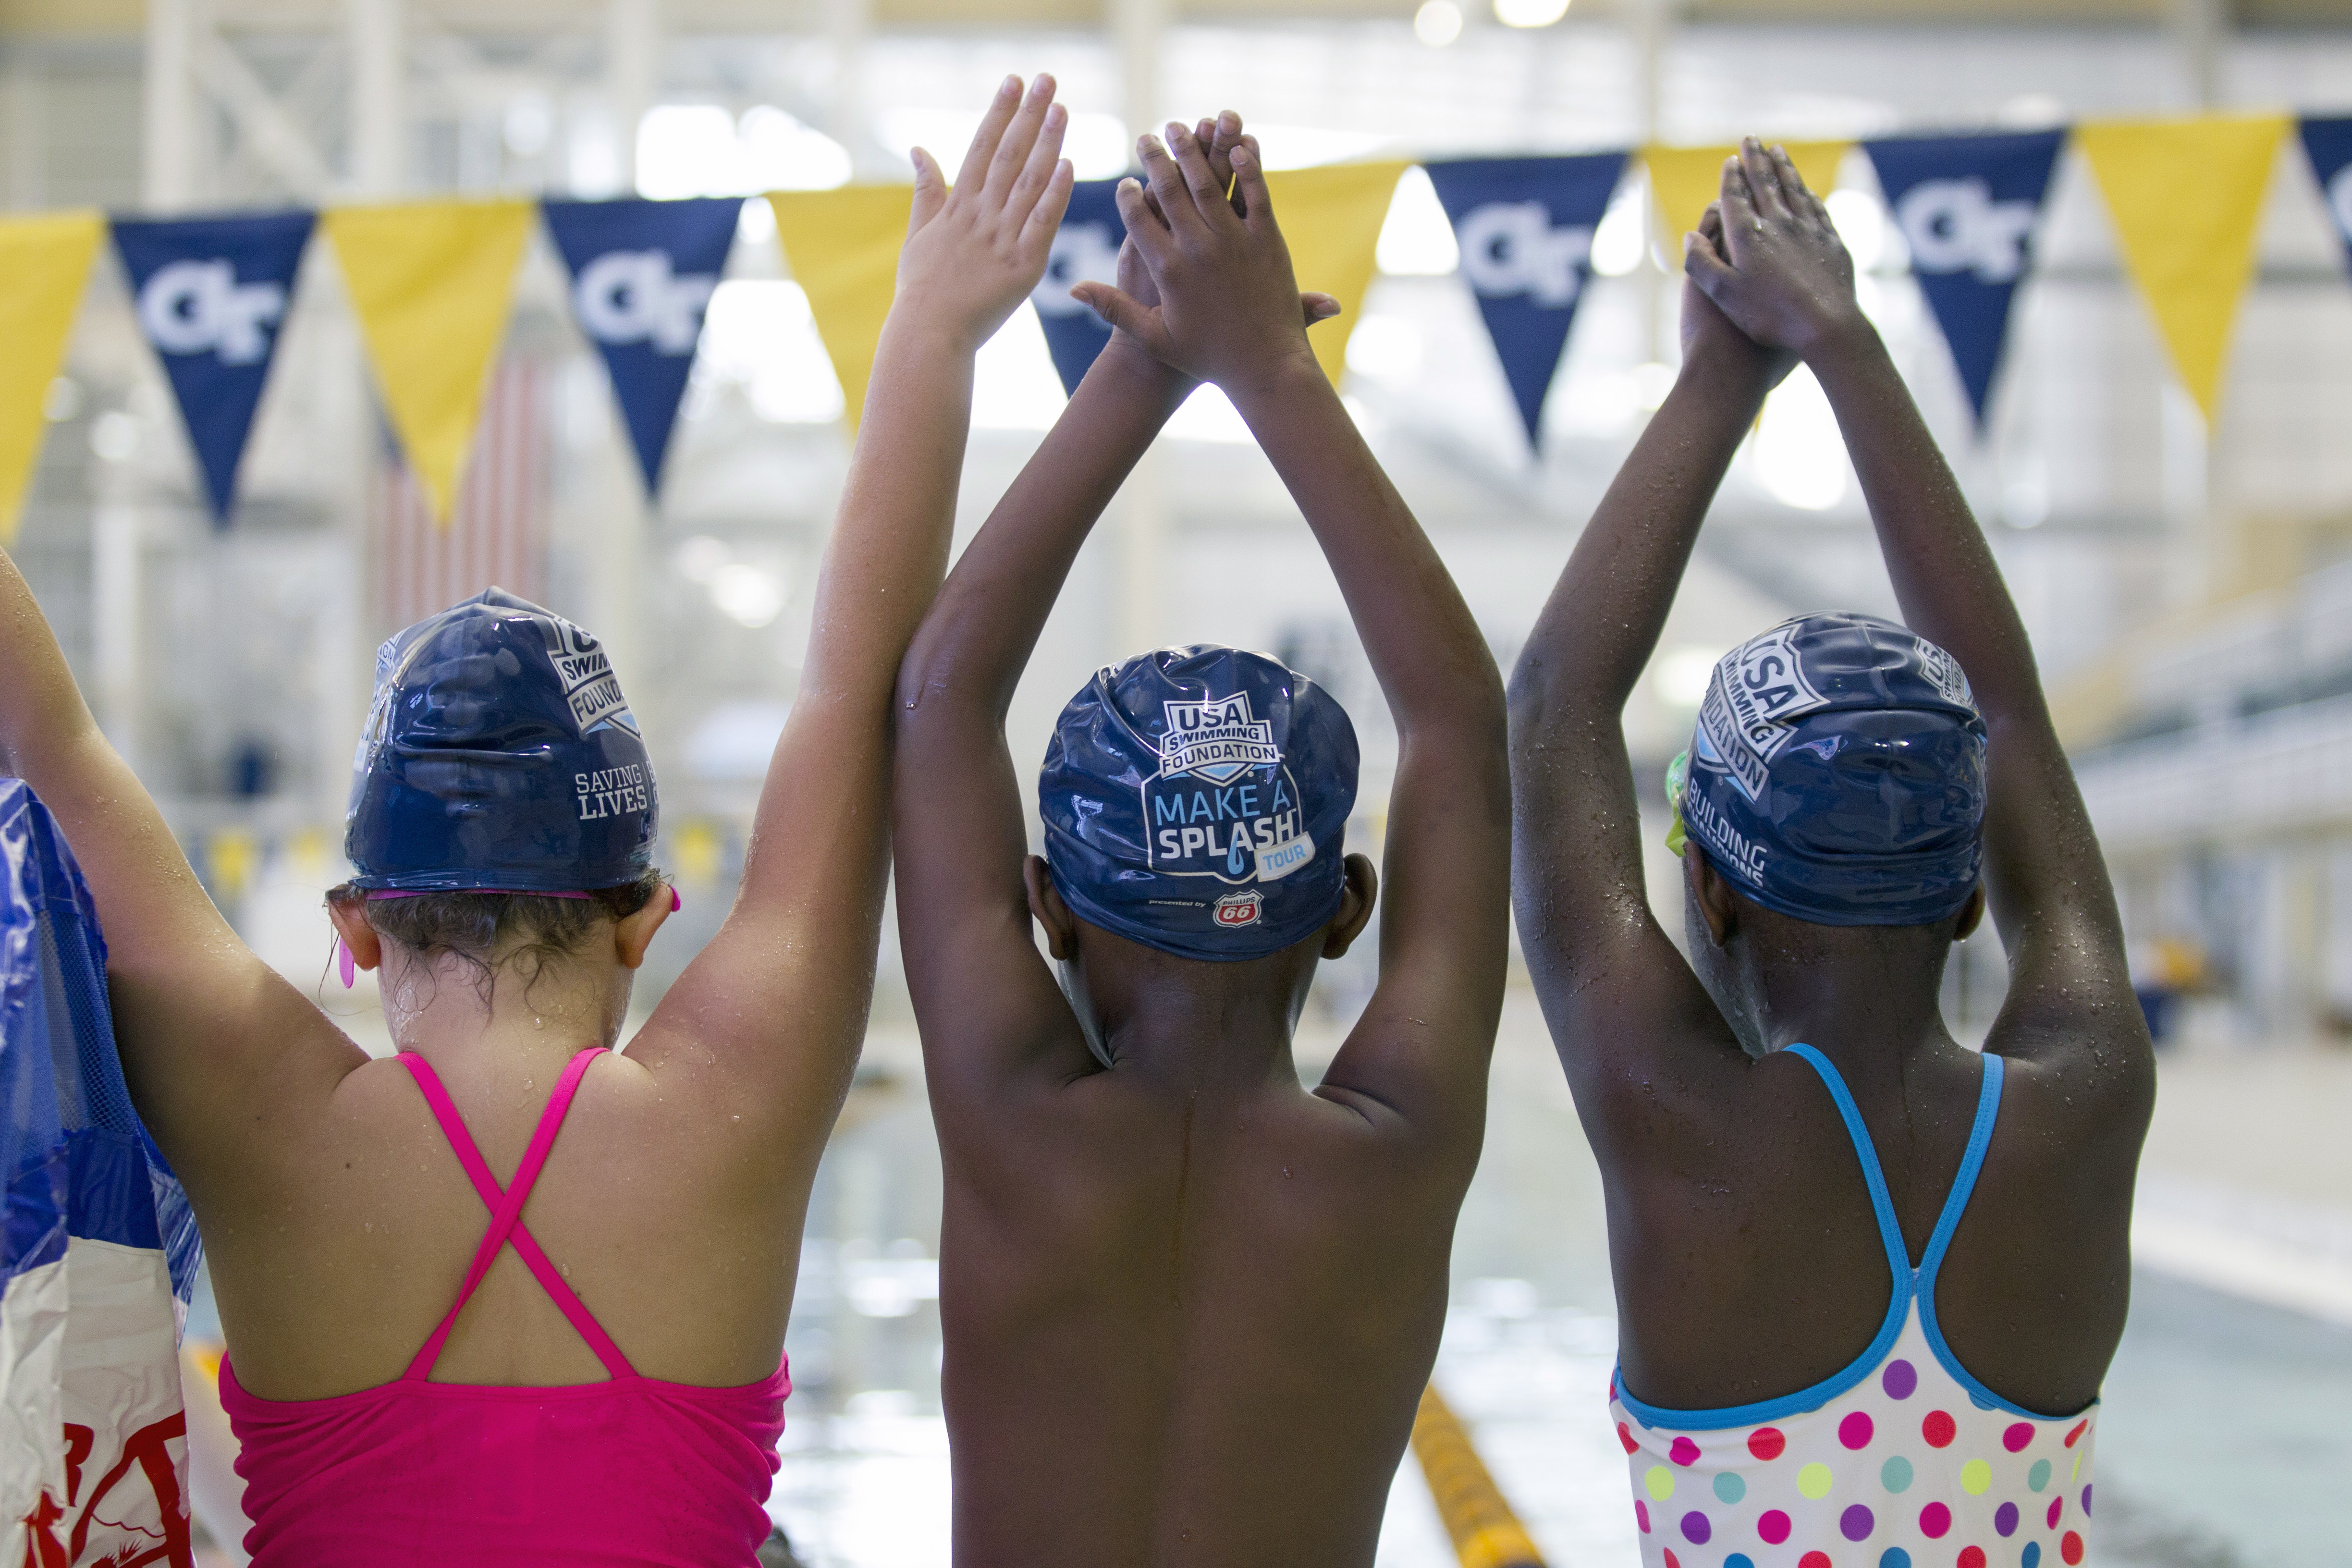 This June 2015 photo provided by the USA Swimming Foundation shows children during a swimming lesson in Nederland, Texas, as part of the USA Swimming Foundation's Make a Splash program. A study released Thursday, May 25, 2017, found that found nearly 64 p